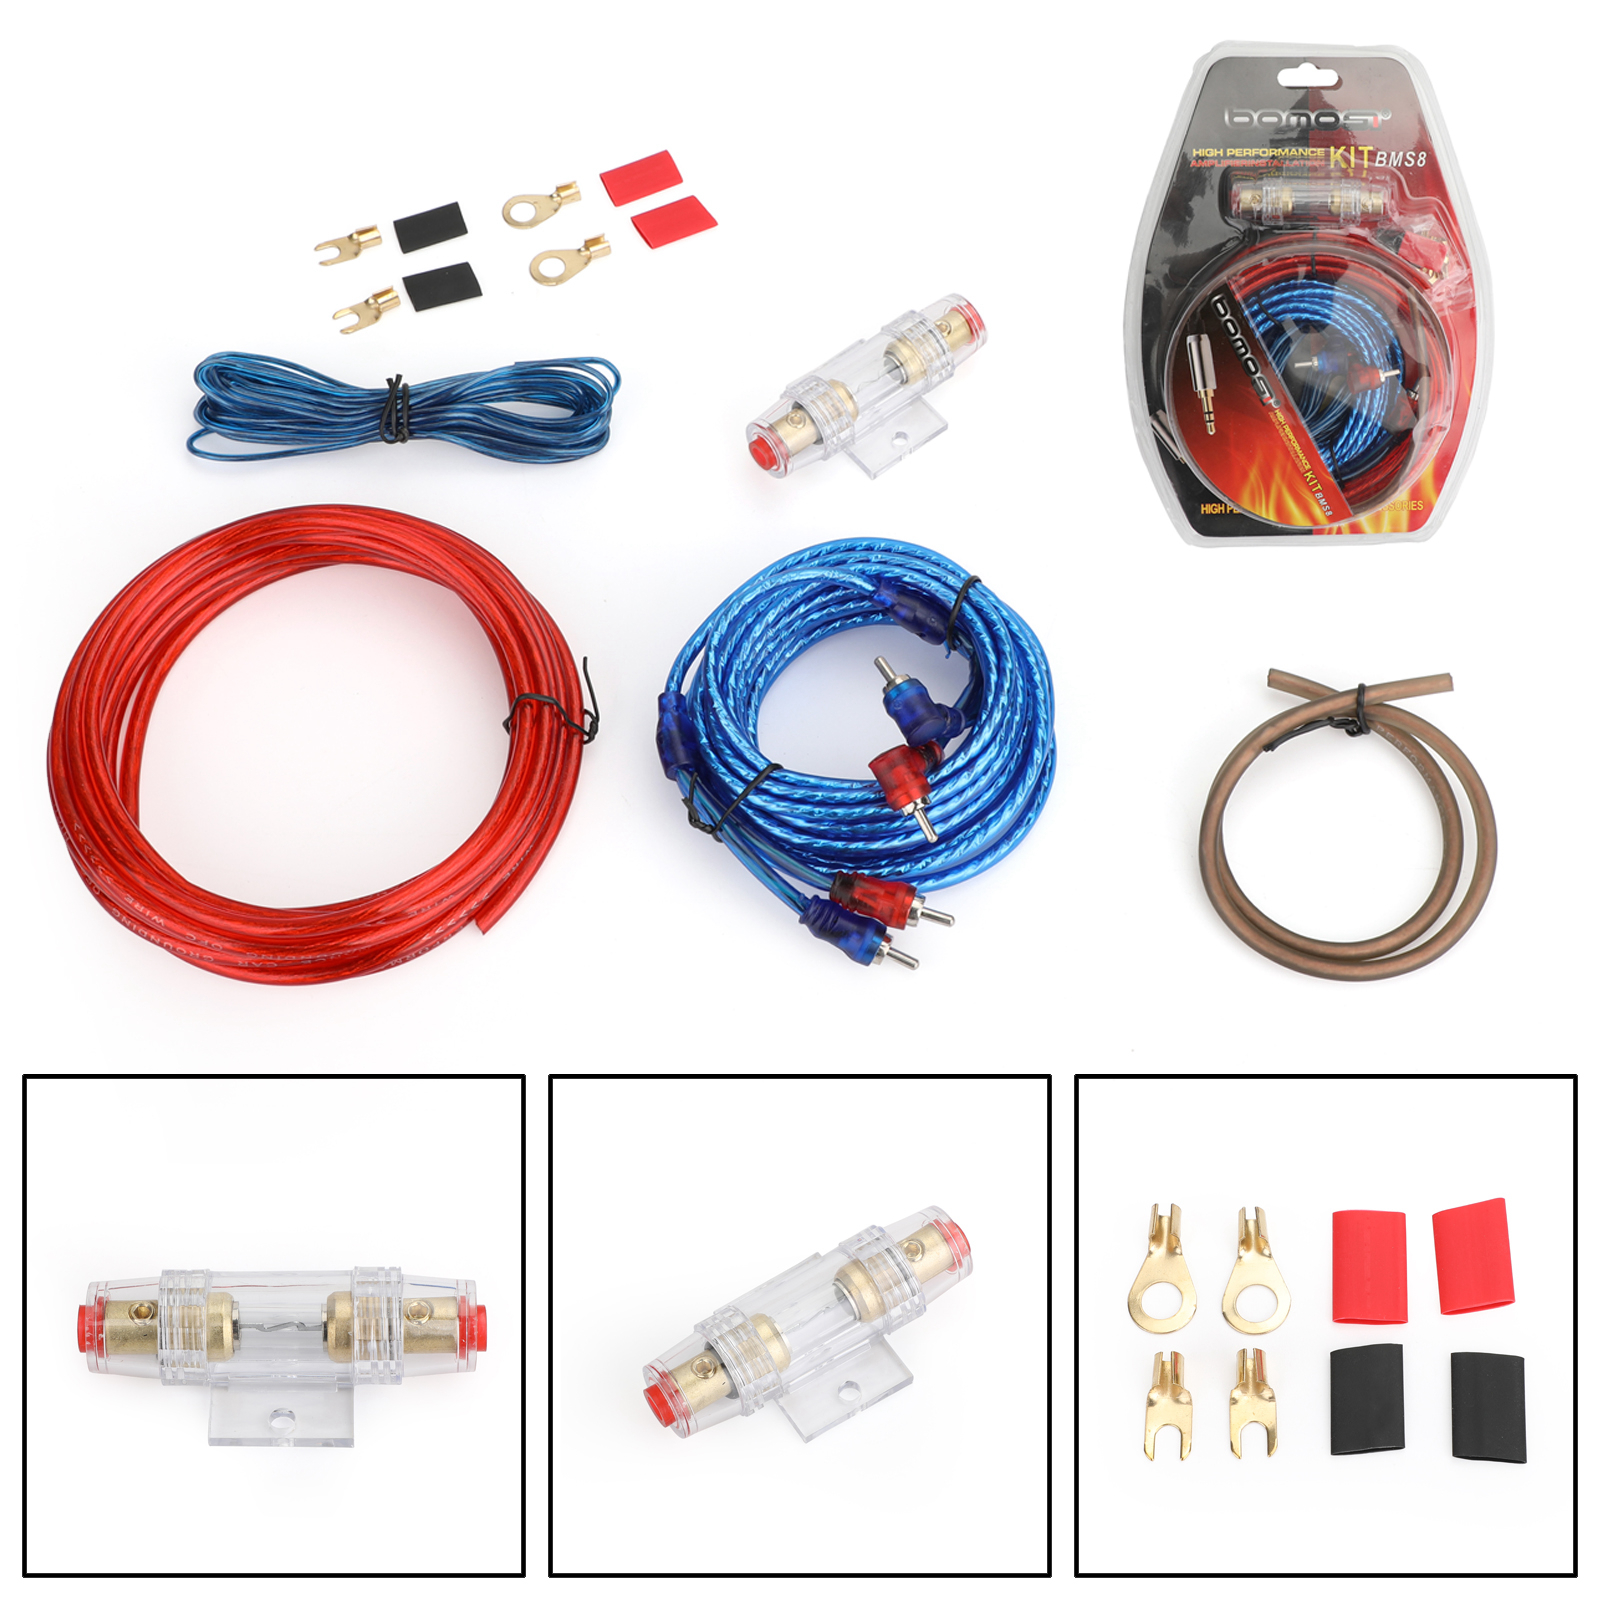 Details about 10 GAUGE 1500W Cable Car Amplifier Kit Amp Audio RCA on cd player wiring kit, cable wiring kit, car wiring kit, subwoofer connectors, speaker wiring kit, subwoofer grill, tv wiring kit, subwoofer capacitor, subwoofer plug, sub wiring kit, subwoofer enclosures, daytime running lights wiring kit, subwoofer speakers, subwoofer box, stereo wiring kit, audio wiring kit, subwoofer amplifier, subwoofer cover, amplifier wiring kit, subwoofer fuse,